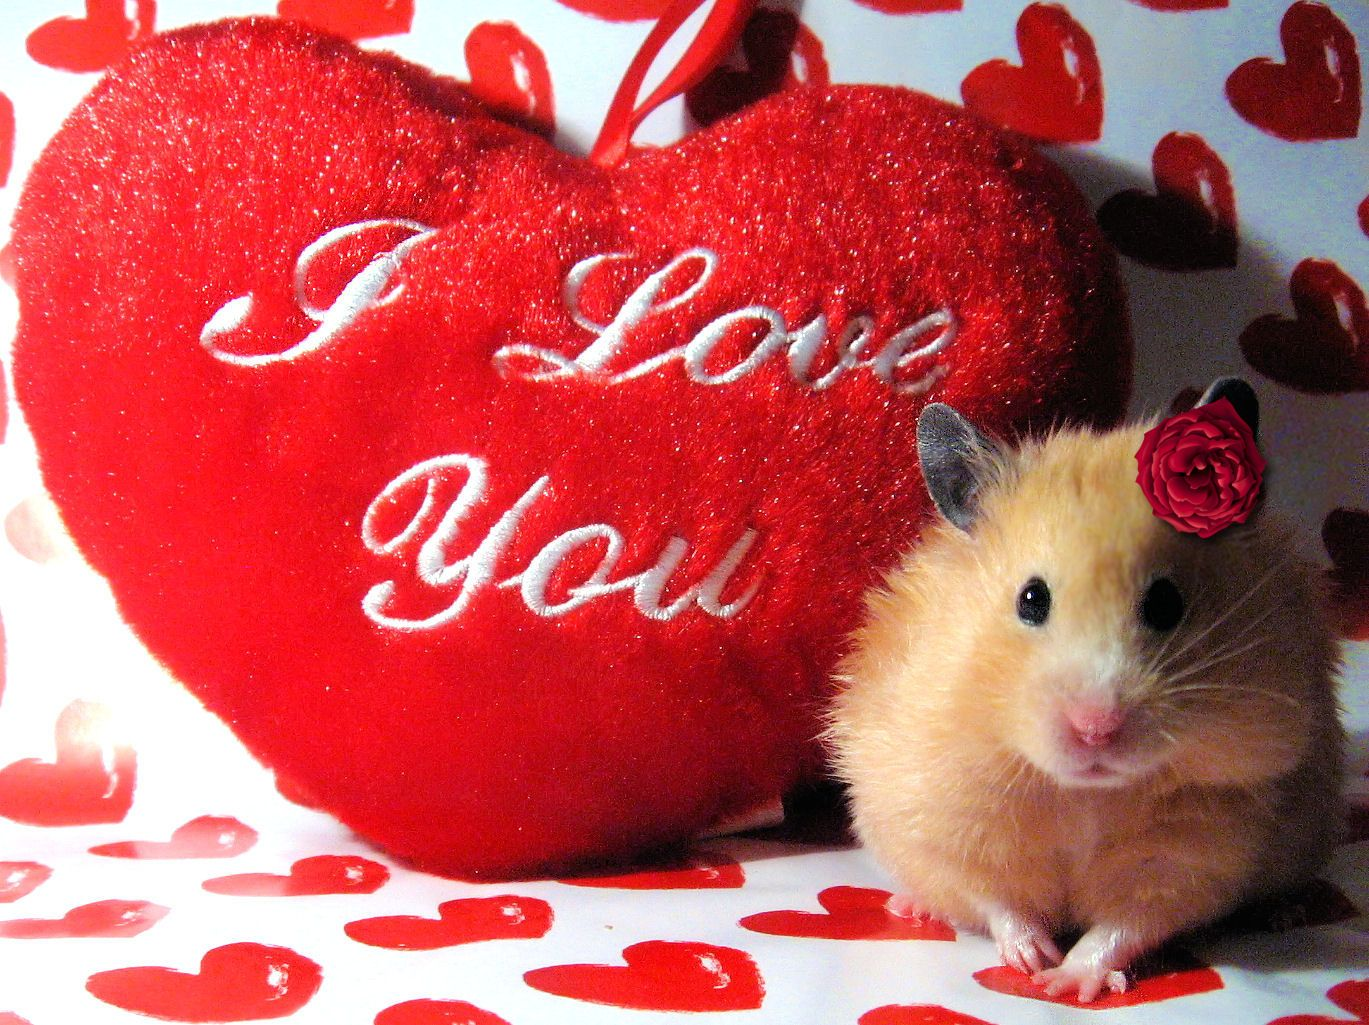 valentines day cute animals cute animal valentines day pictures 7dxw92d1 - Valentines Animals